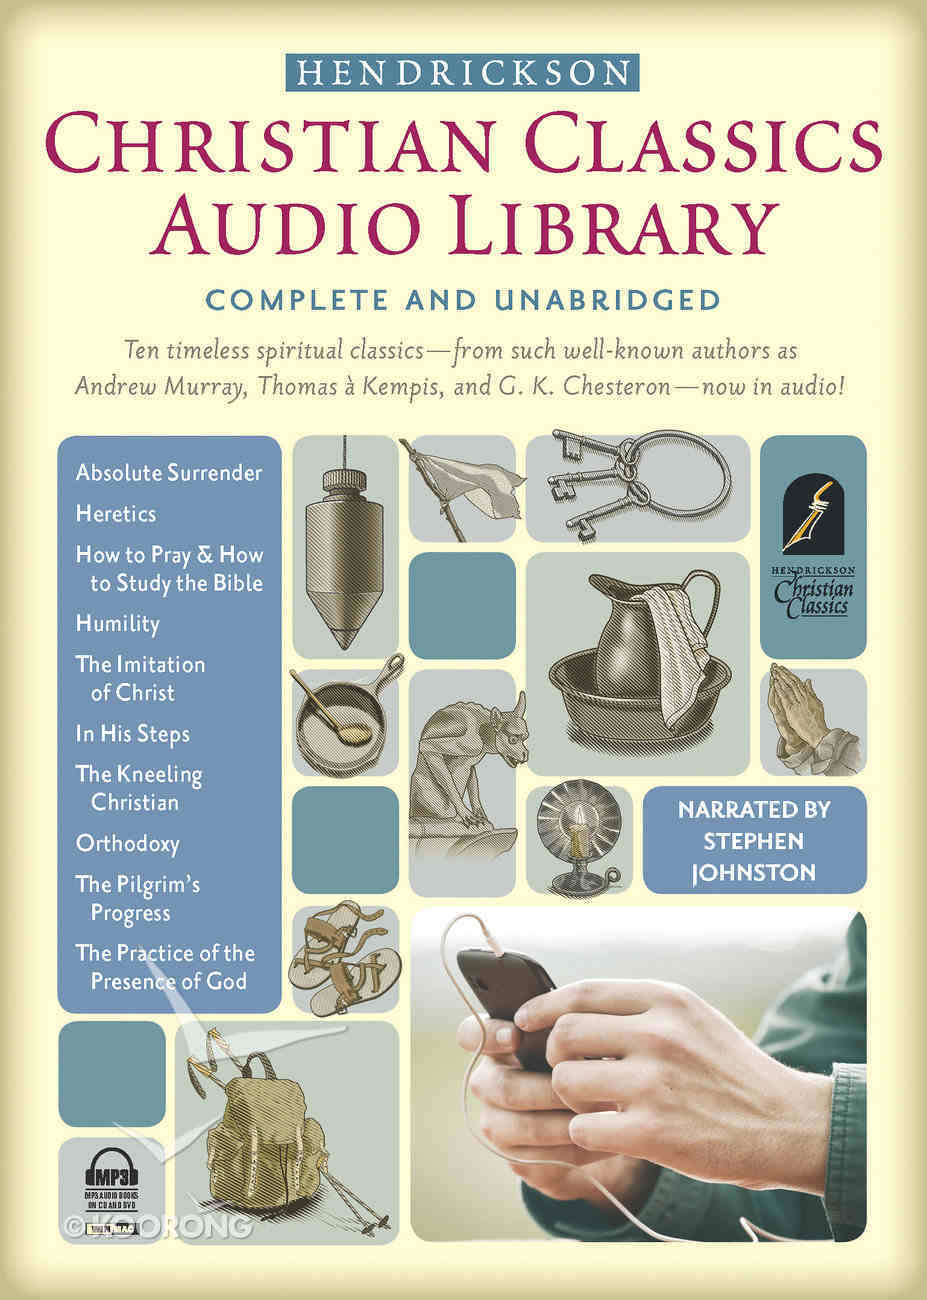 Hendrickson Christian Classics Audio Library (Mp3) Dvd-rom